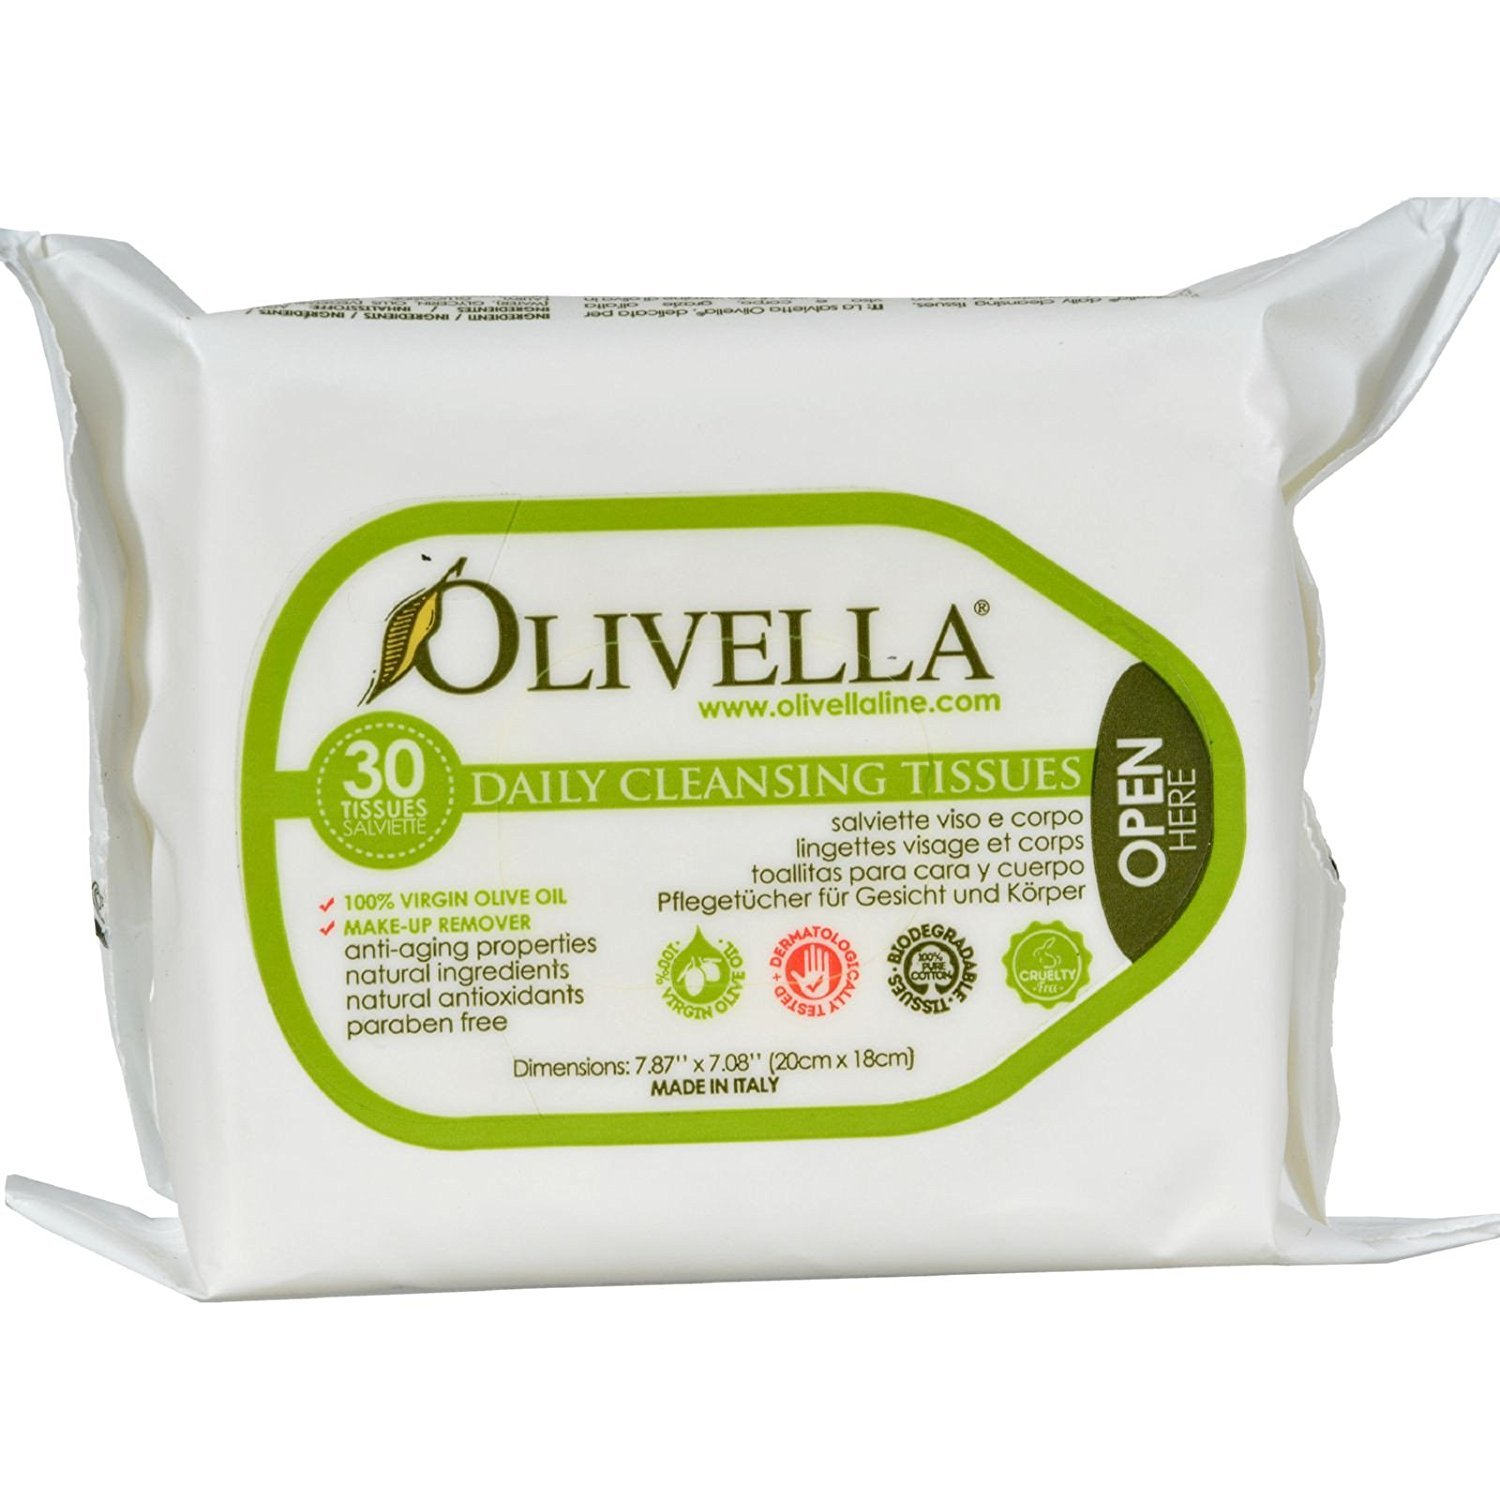 Amazon.com: OLIVELLA Cleansing Tissues, 30 Count by Olivella: Health & Personal Care